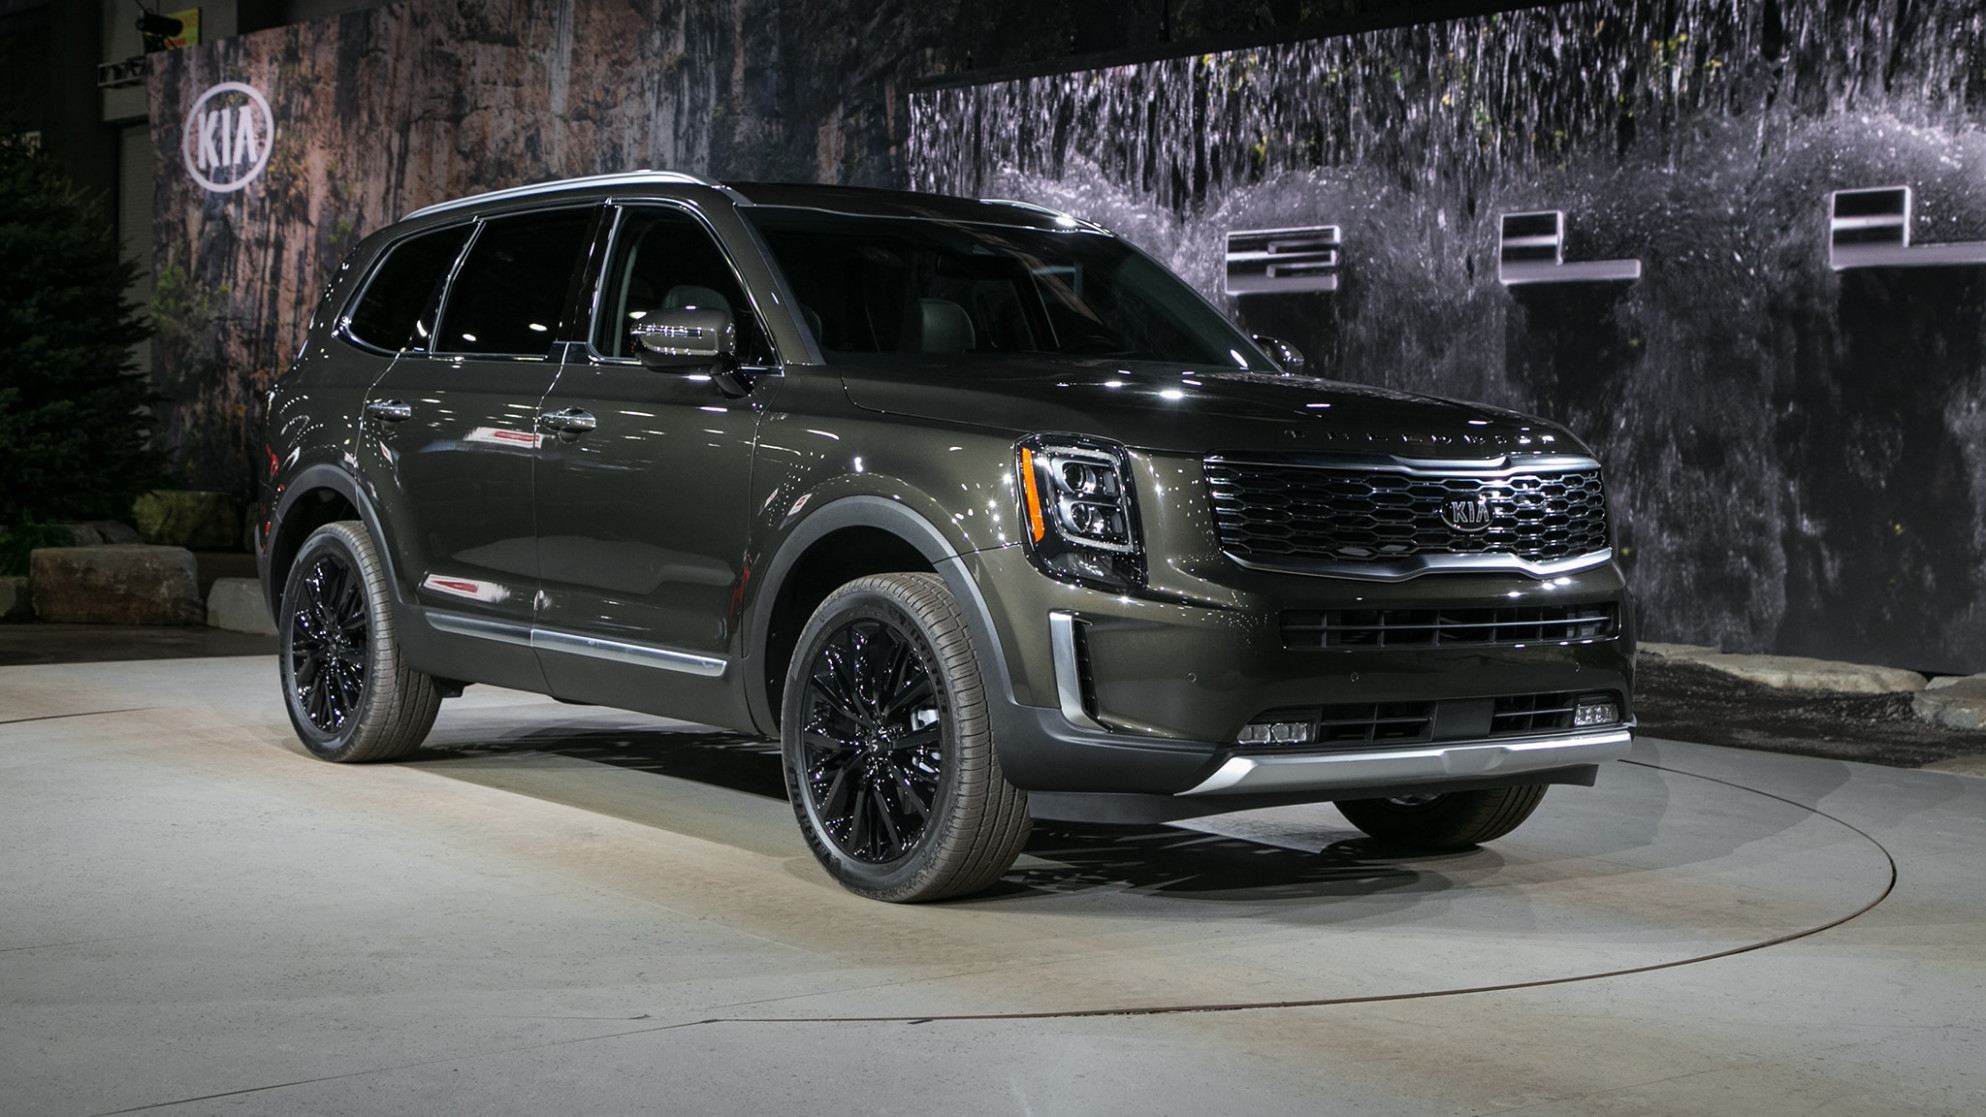 8 Kia Telluride First Look: Going Bigger